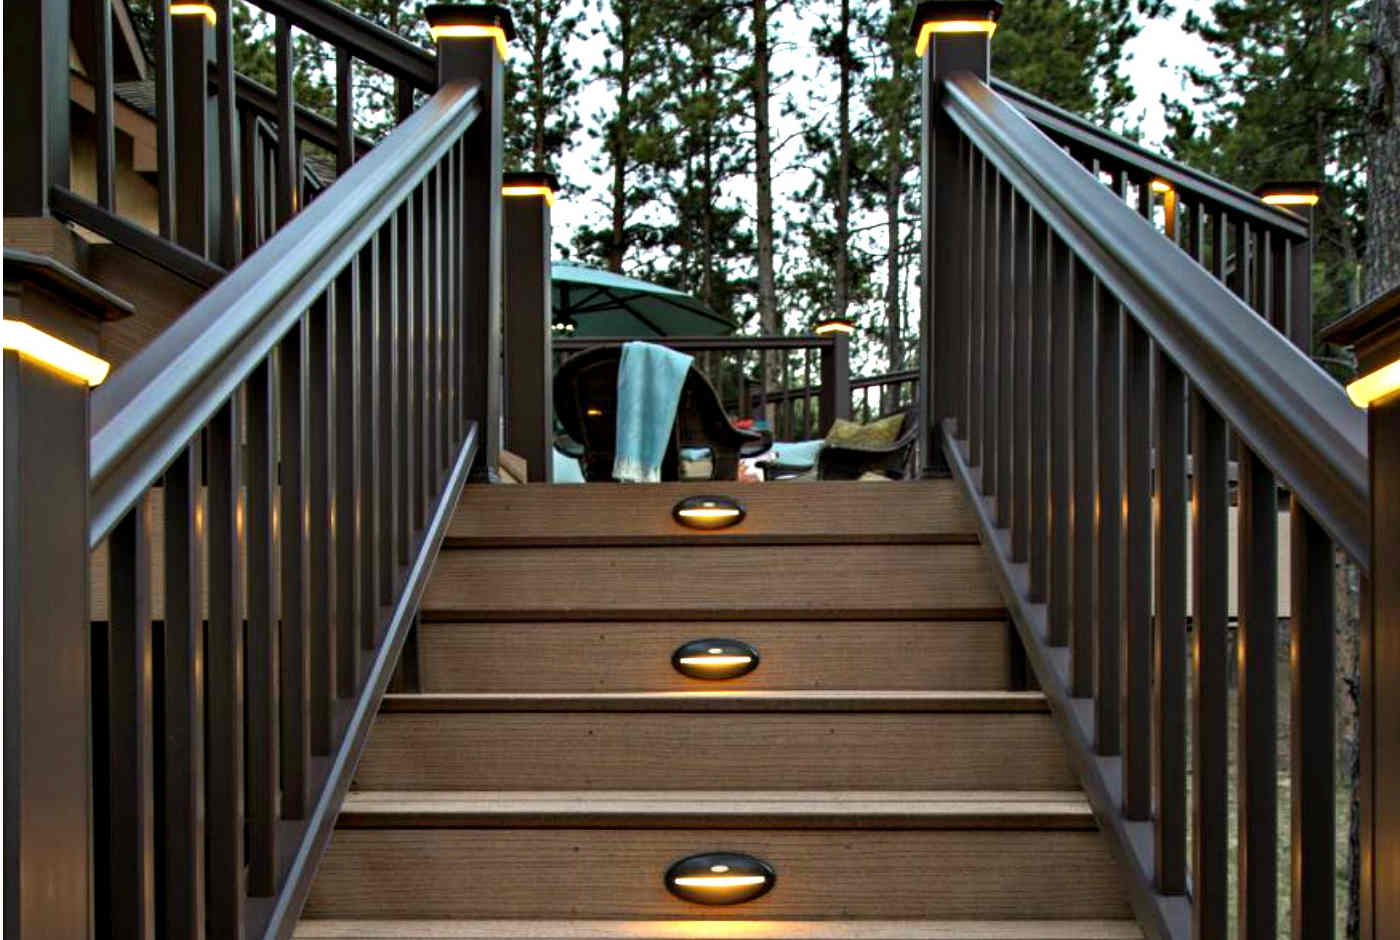 They Subtly Light The Path To Make Staircases Safe At Night. They Can Sit  On Each Step Or Be Staggered To Every Second.